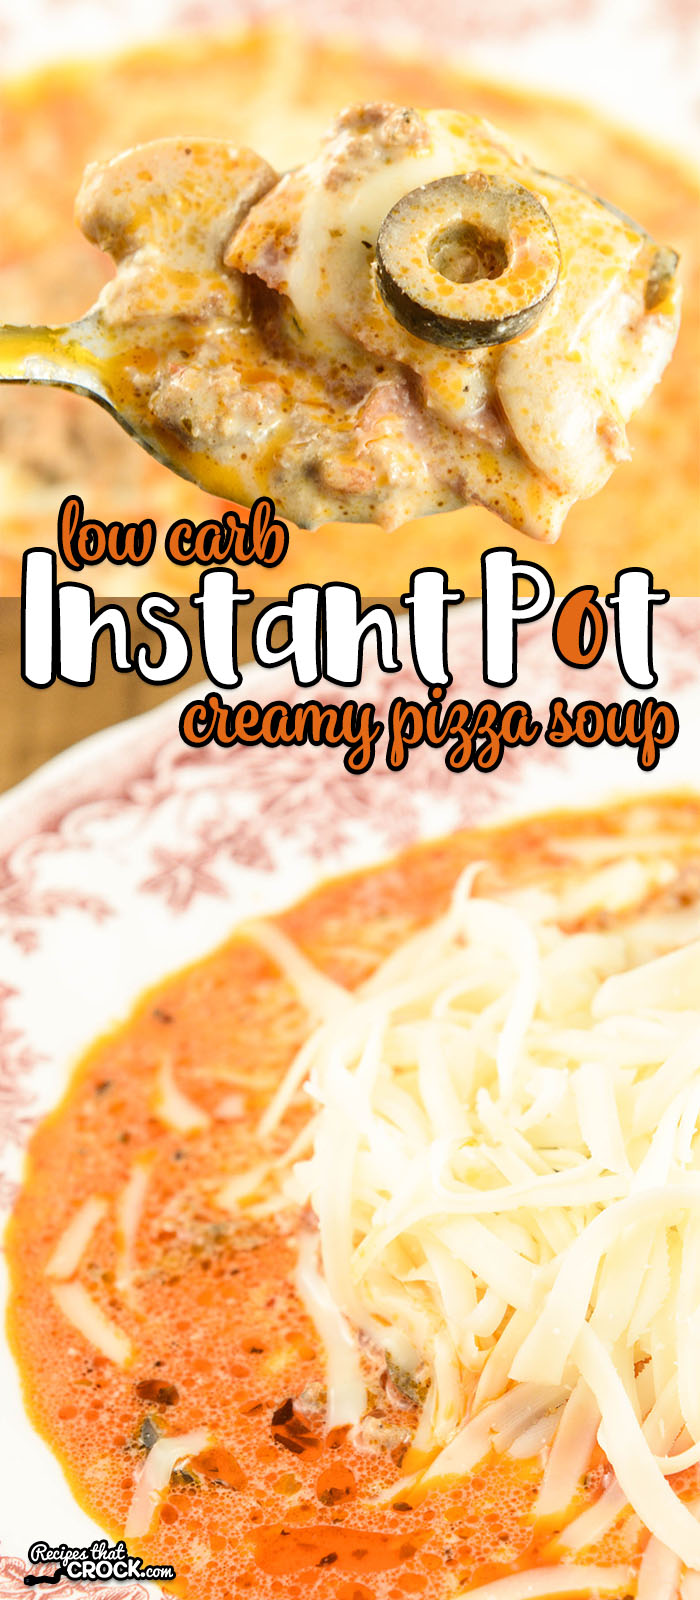 Are you looking for easy instant pot or electric pressure cooker recipes? This Low Carb Instant Pot Creamy Pizza Soup is so easy to toss together and so delicious no one would ever guess it was low carb!